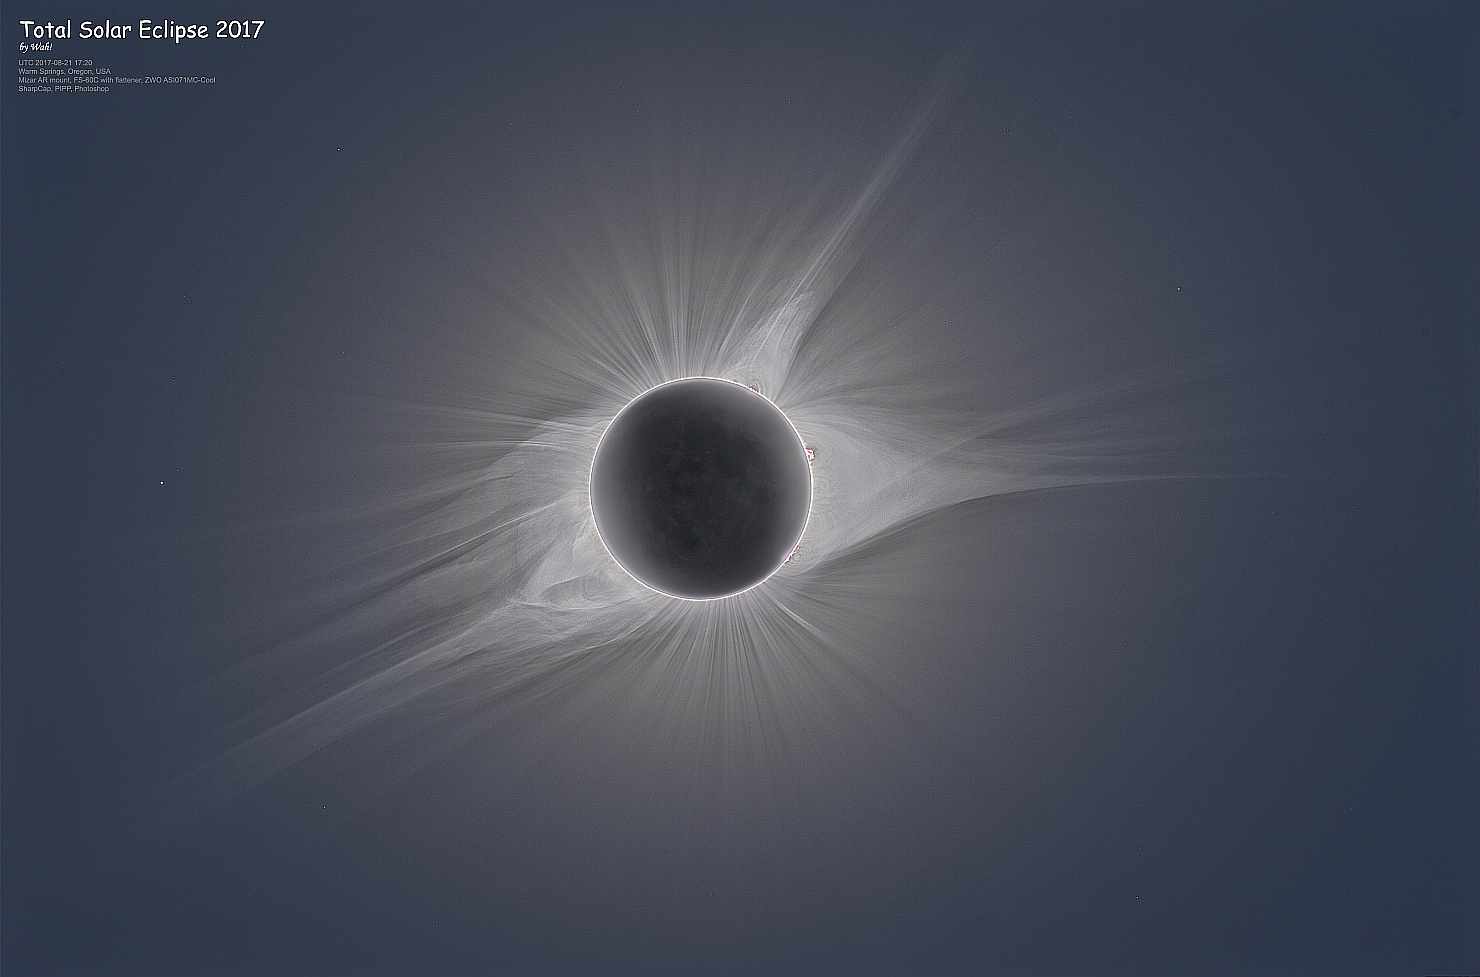 TotalSolarEclipse_ASI071MC-Cool_20170821_Stacked2.jpg